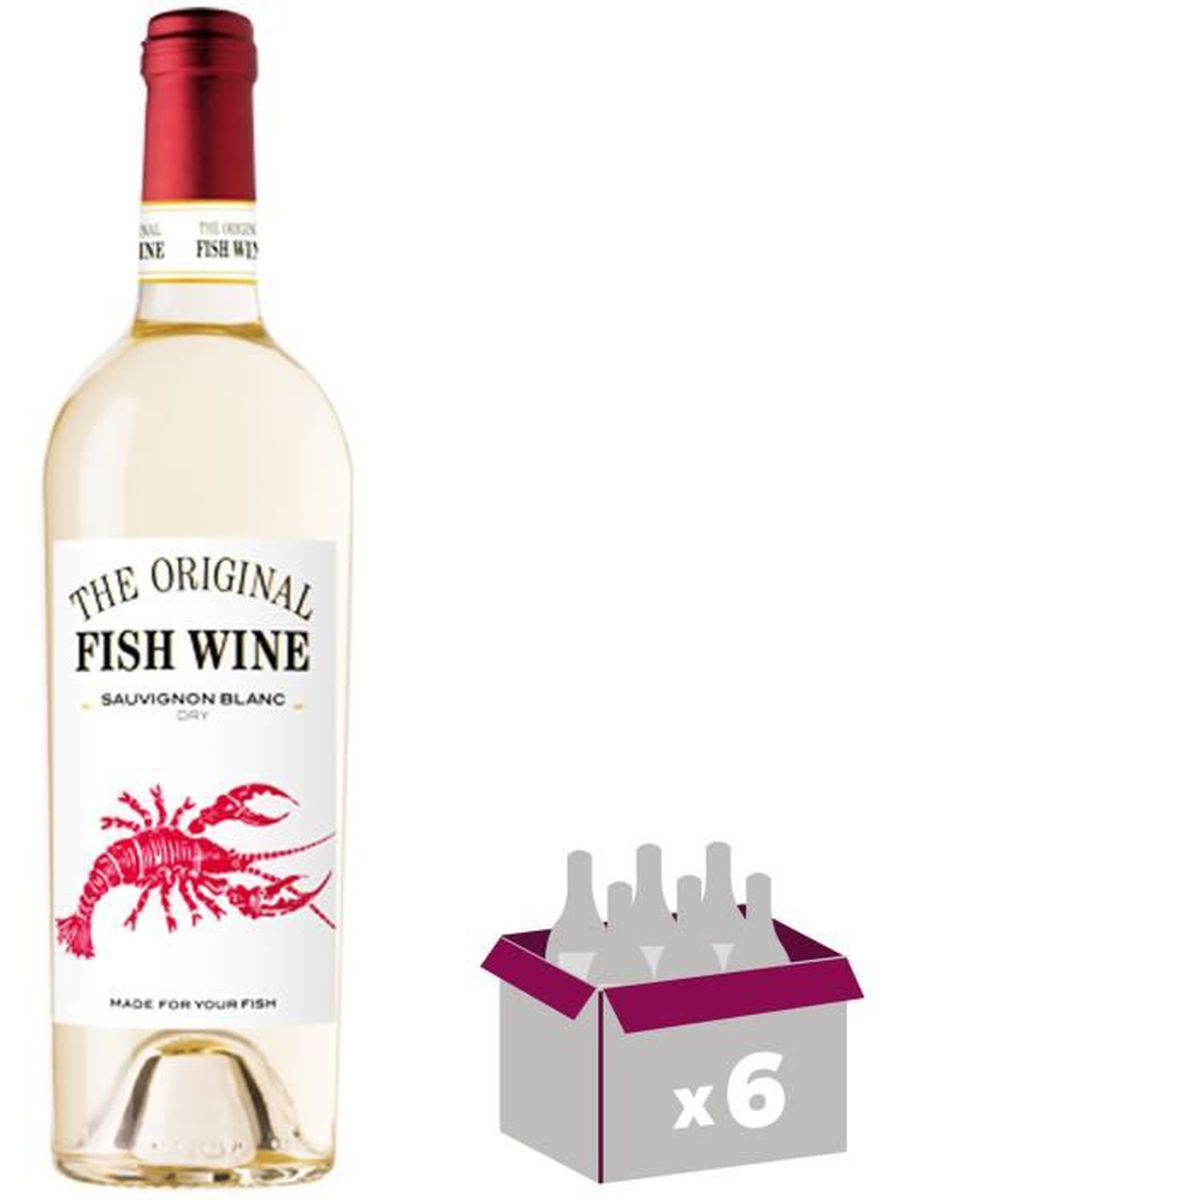 THE ORIGINAL FISH WINE Sauvignon Vin du Chili - Blanc - 75 cl x 6 ... 6cacbaf76211